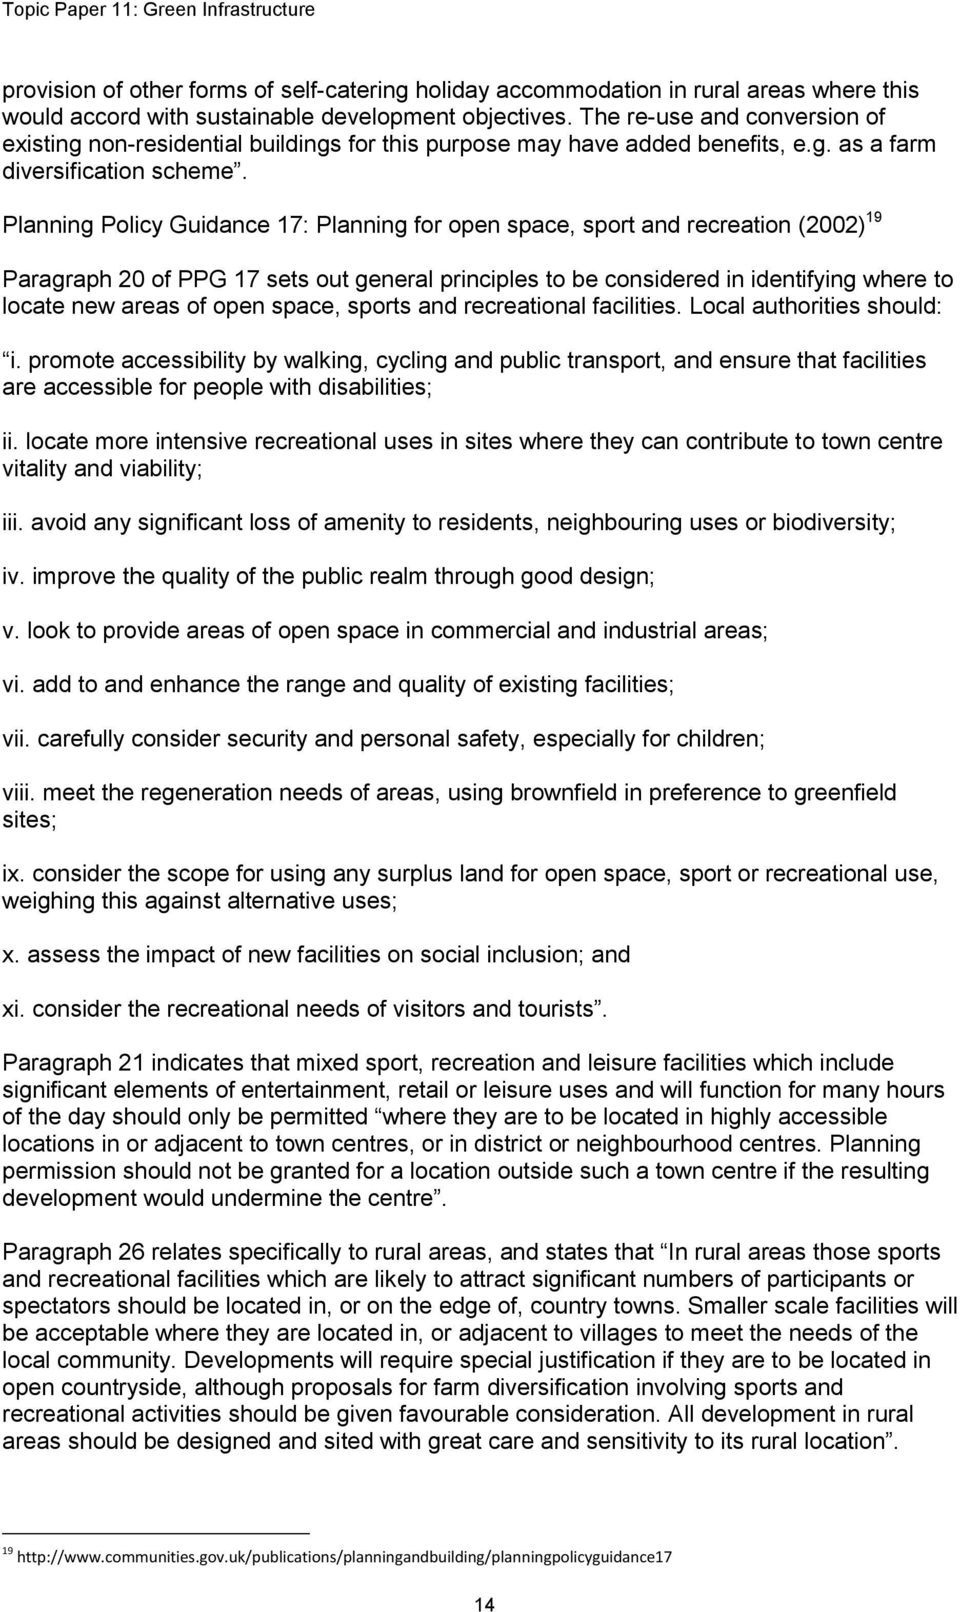 Planning Policy Guidance 17: Planning for open space, sport and recreation (2002) 19 Paragraph 20 of PPG 17 sets out general principles to be considered in identifying where to locate new areas of